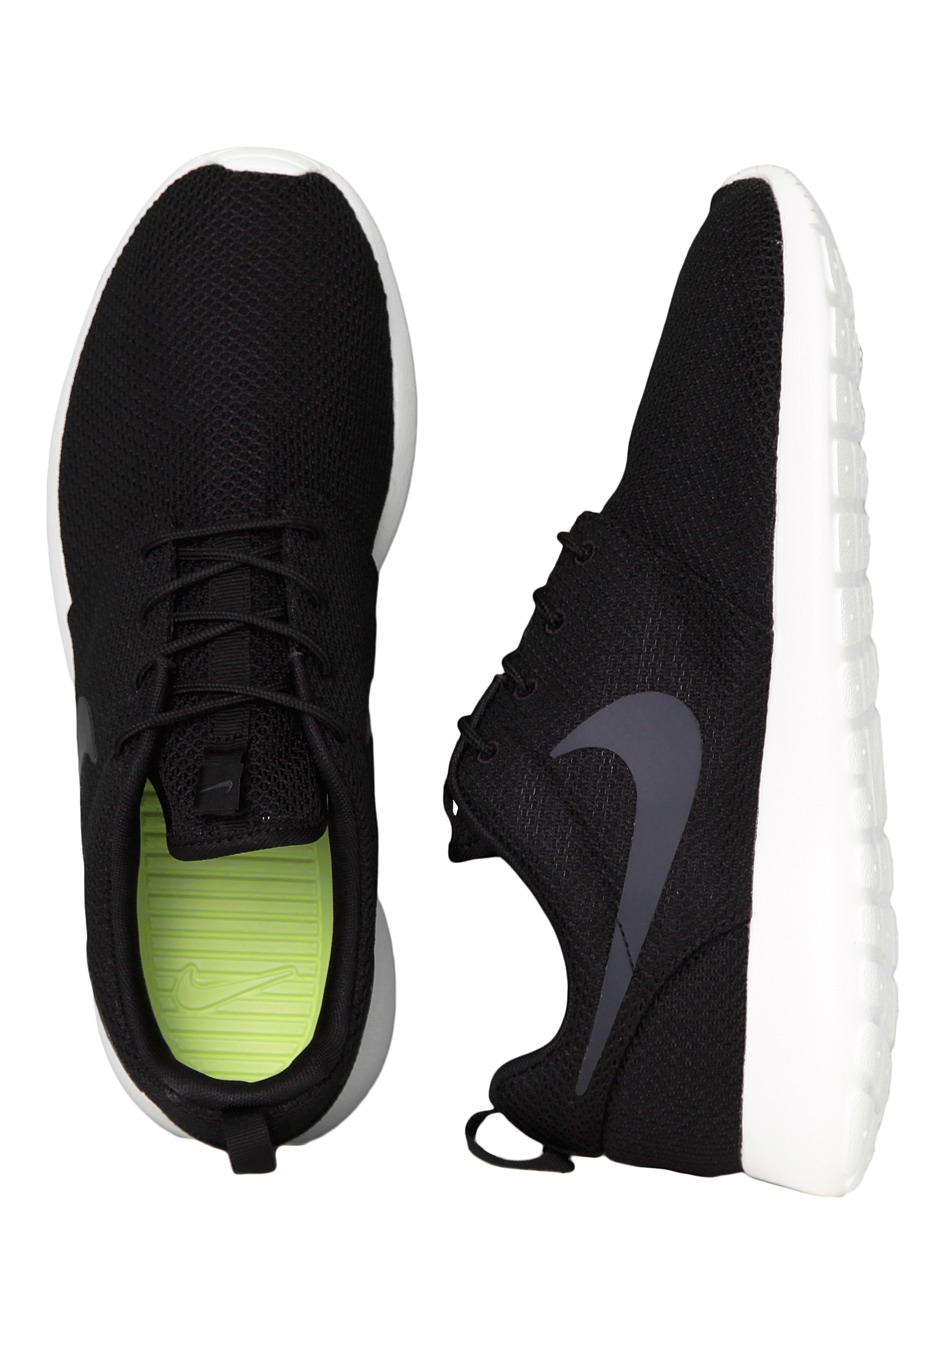 Nike - Roshe Run Black/Anthracite Sail - Shoes - Impericon.com Worldwide